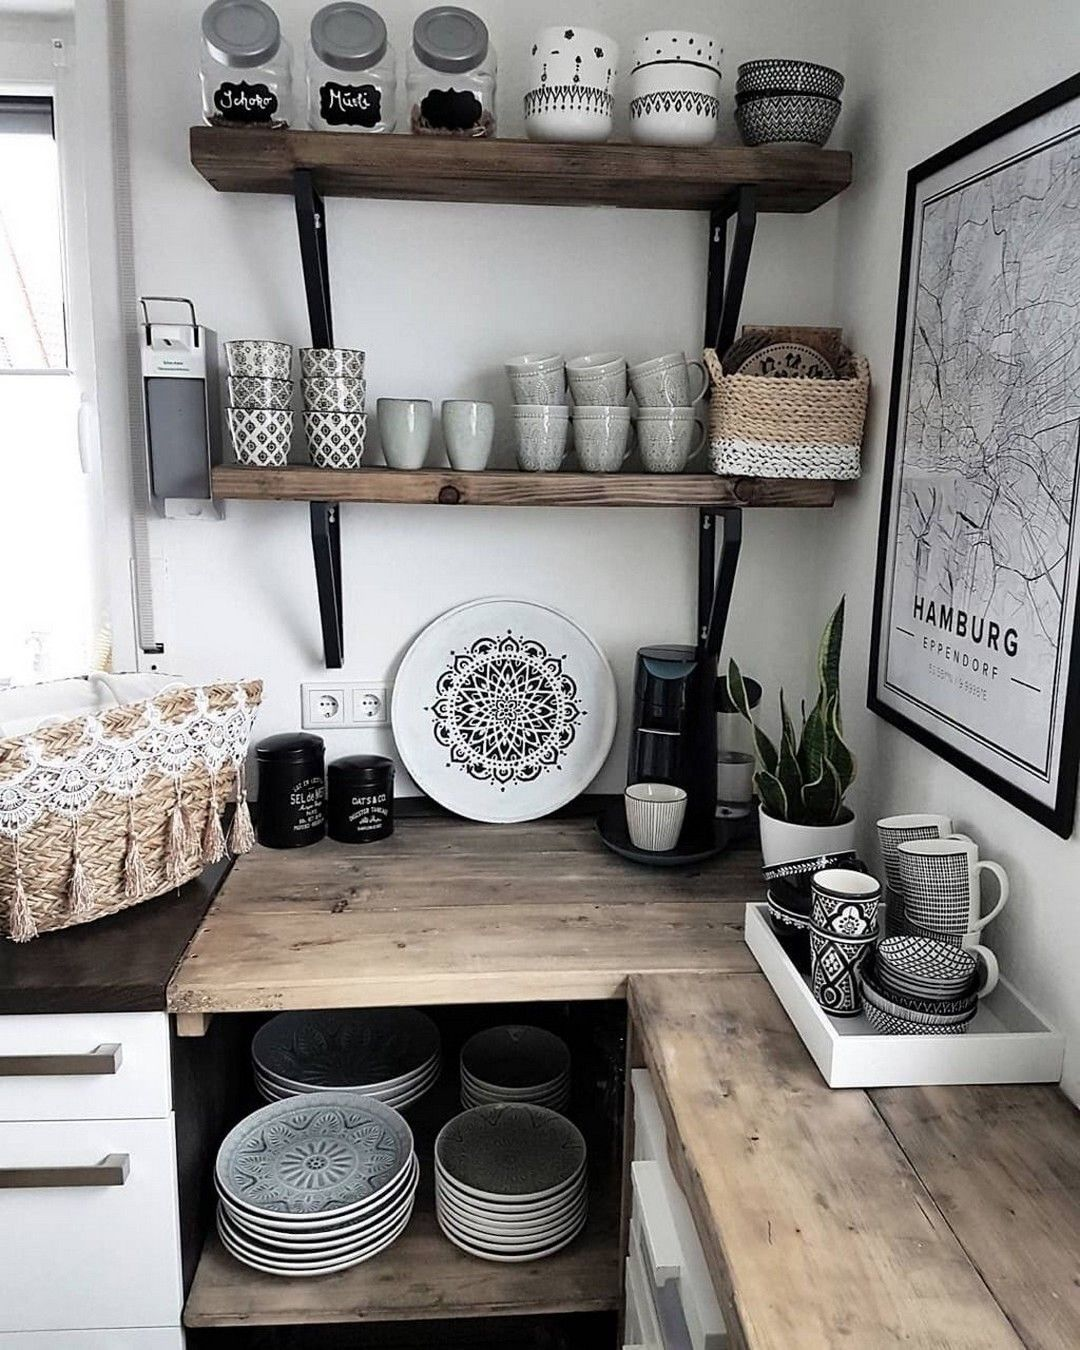 DIY Kitchen Ideas for Small Spaces Small space kitchen